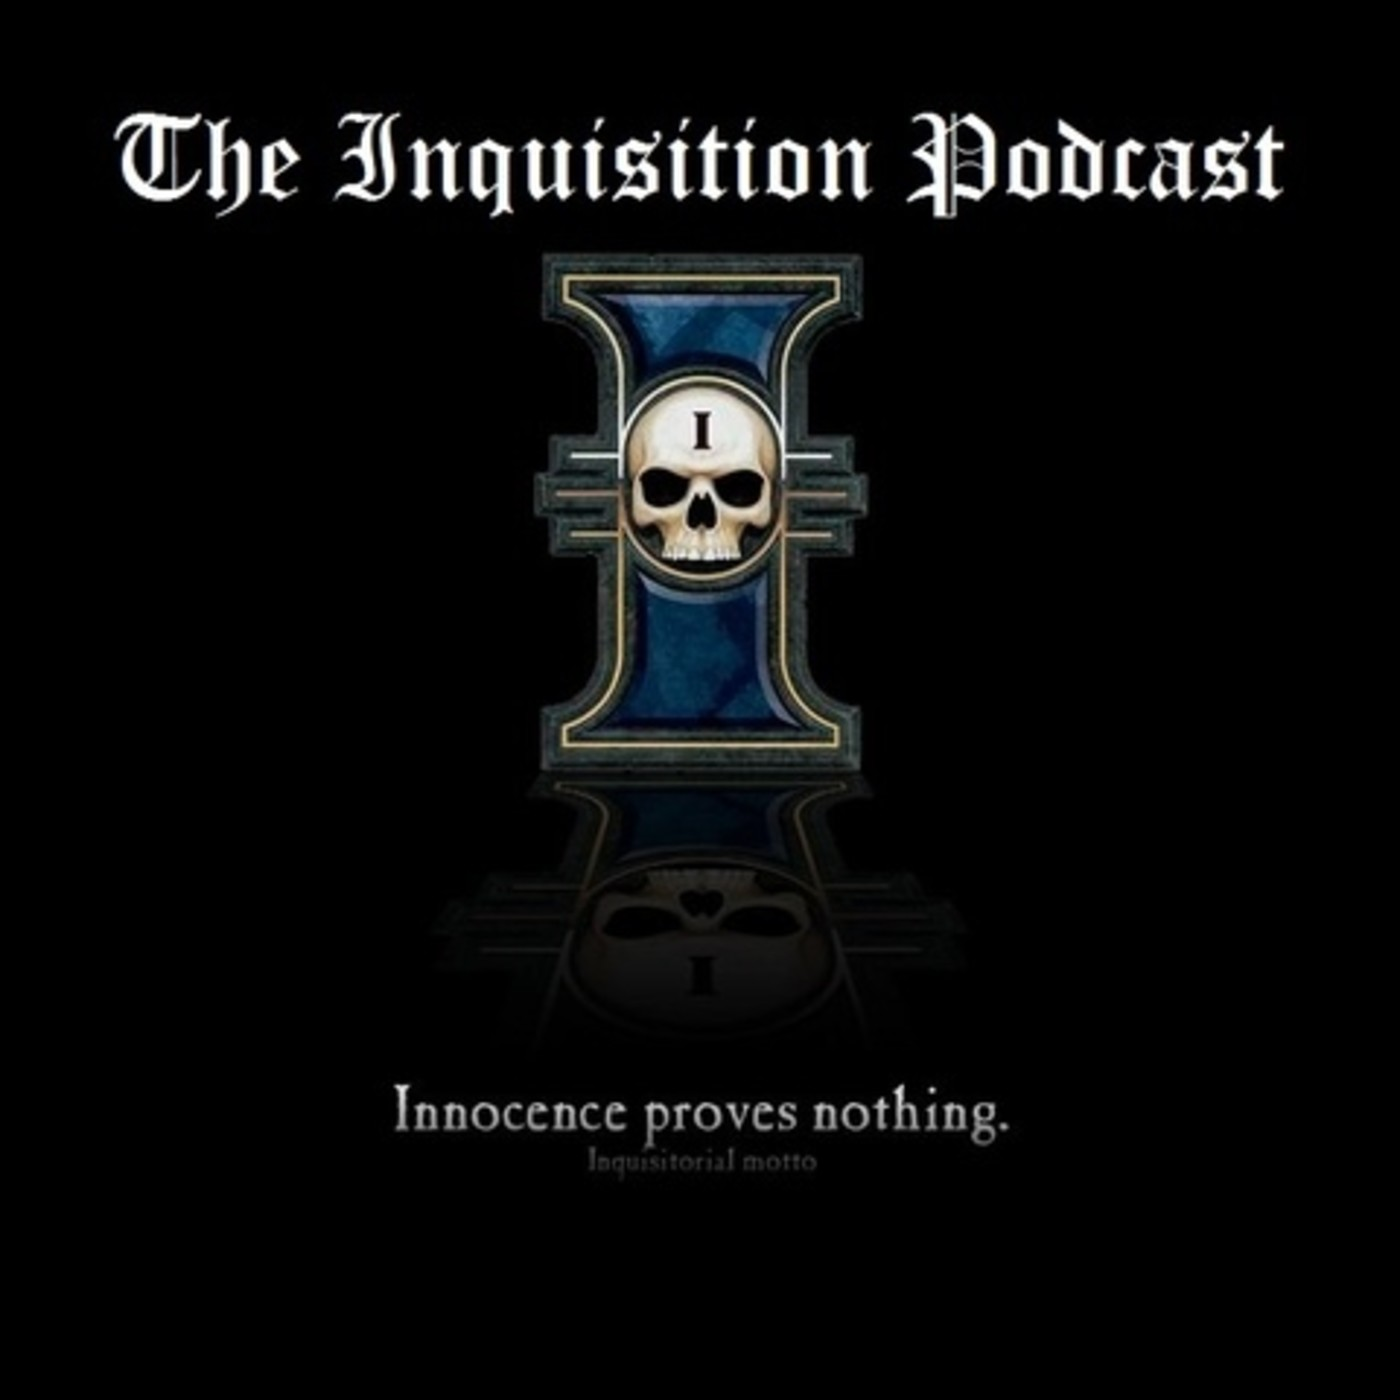 The Inquisition Podcast - In the Land of the (Nottingham) Shire